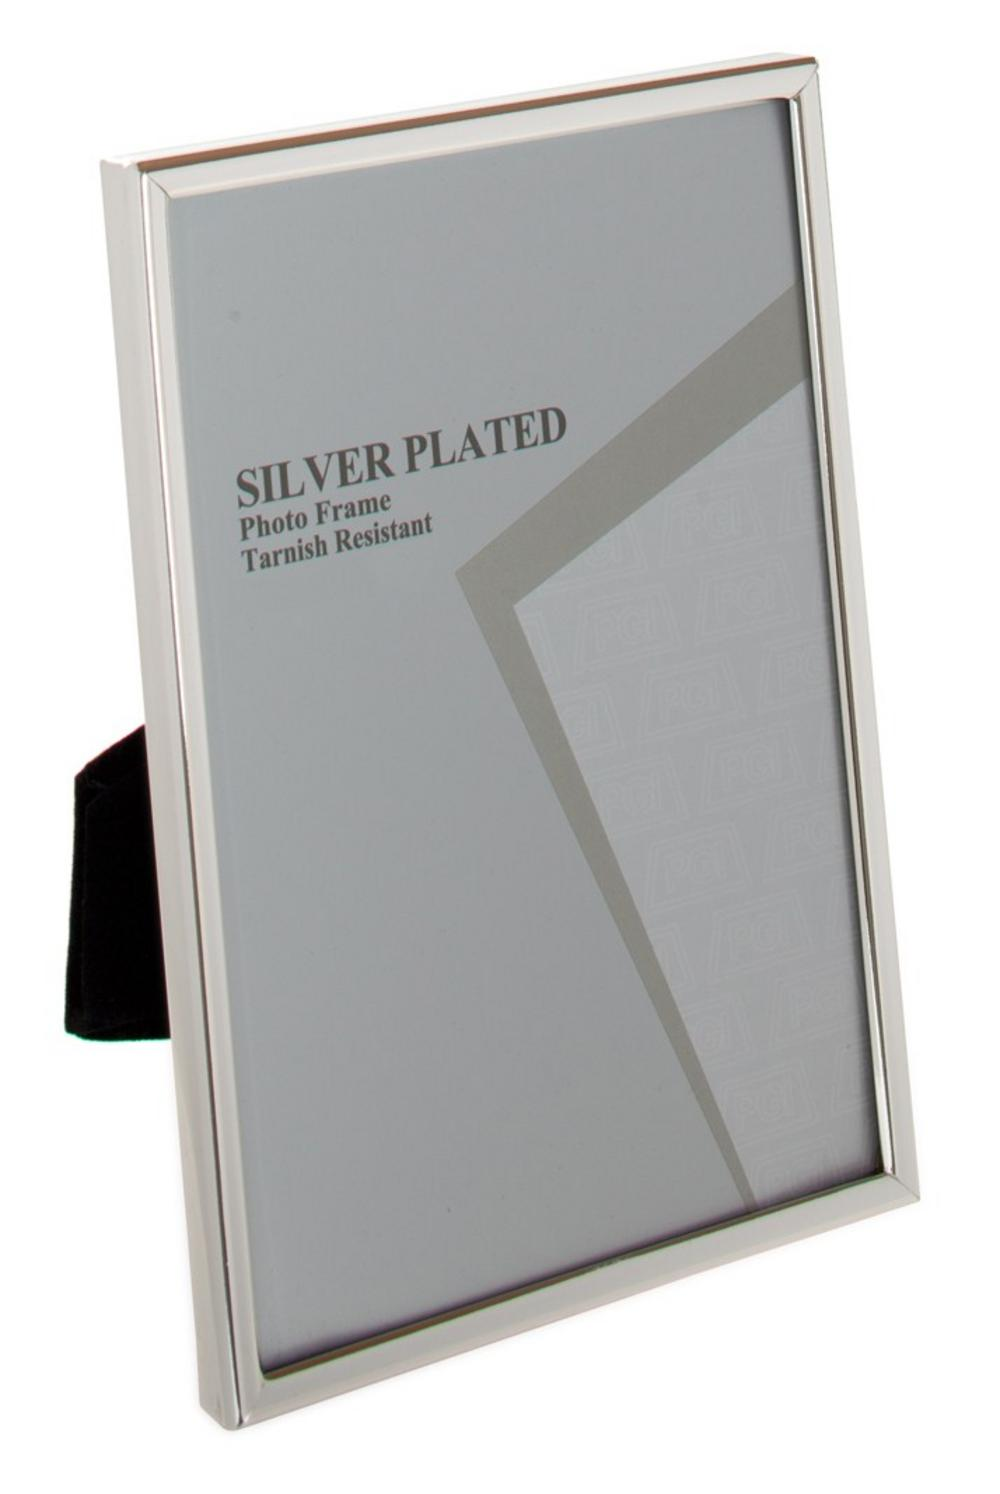 Unity Silver Plated Thin Edge Picture Photo Frame - A4